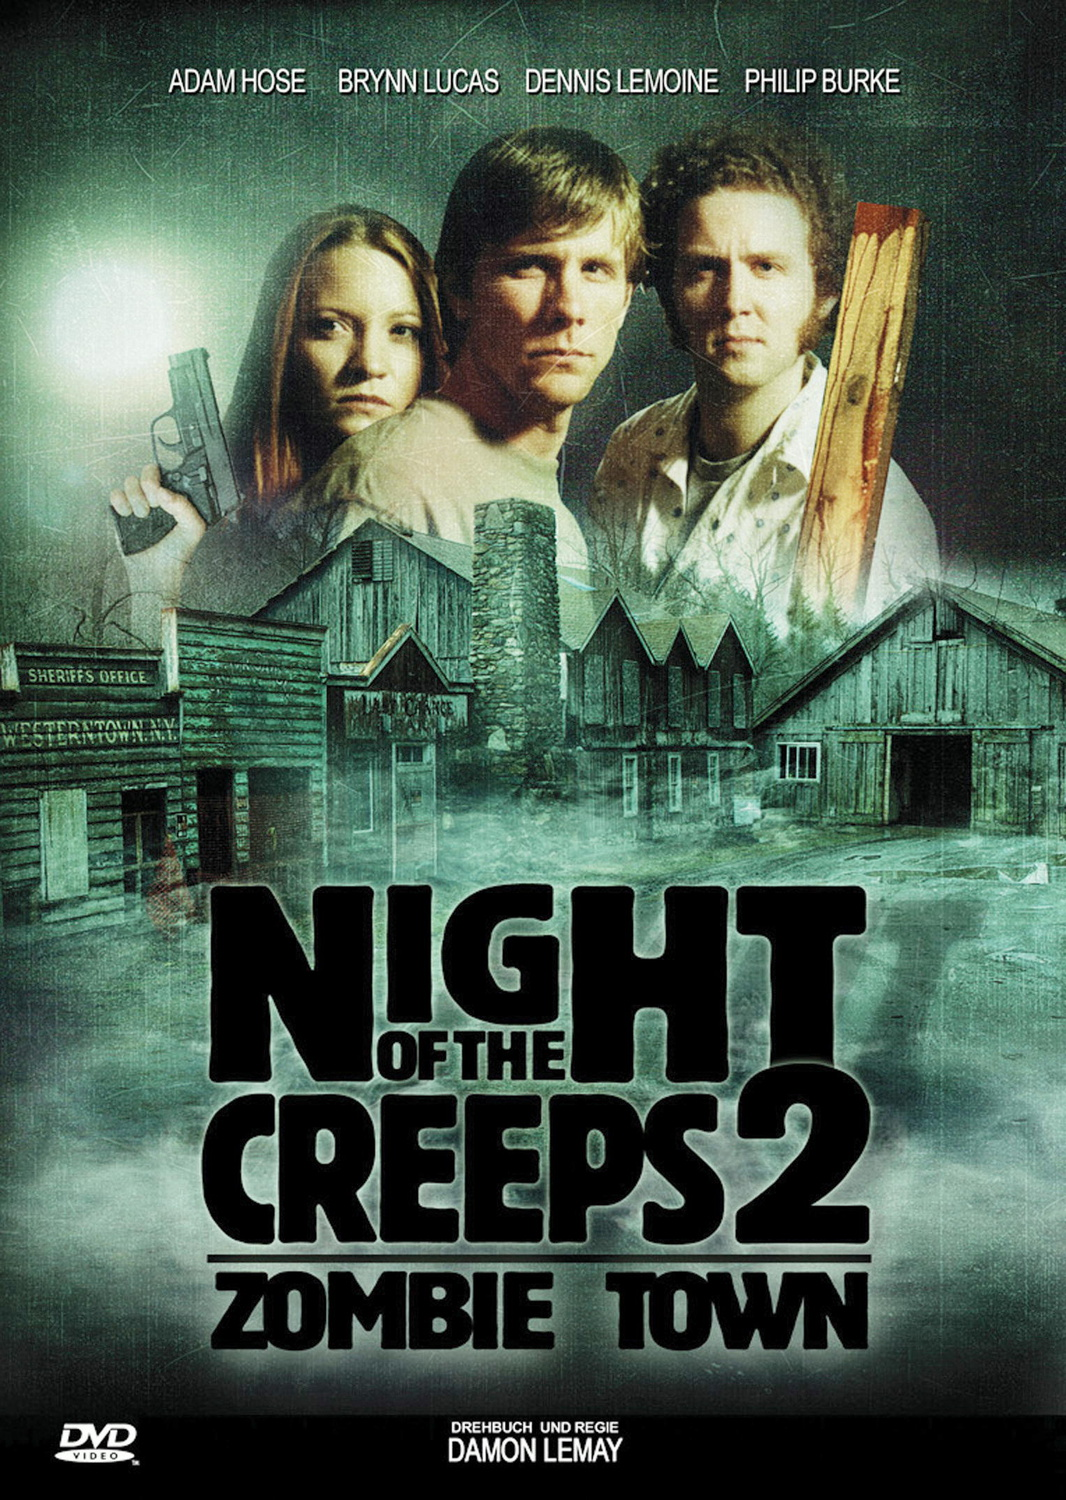 Night of the creeps 2